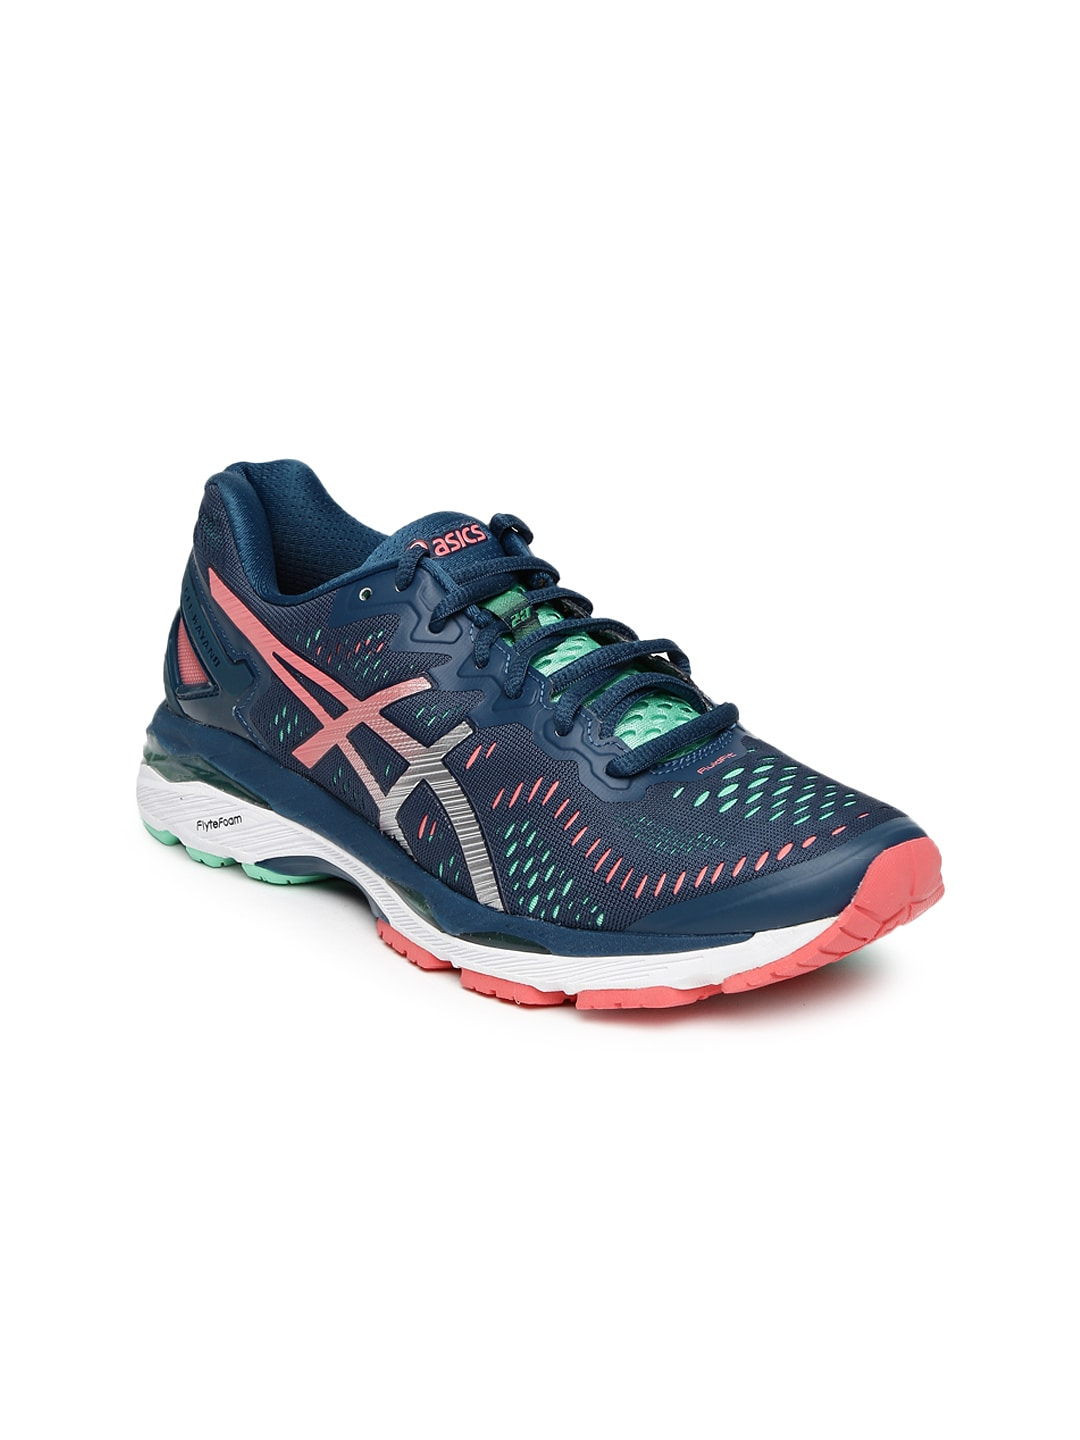 00bfe84f7f4a Asics Sports Shoes - Buy Asics Sports Shoes Online in India